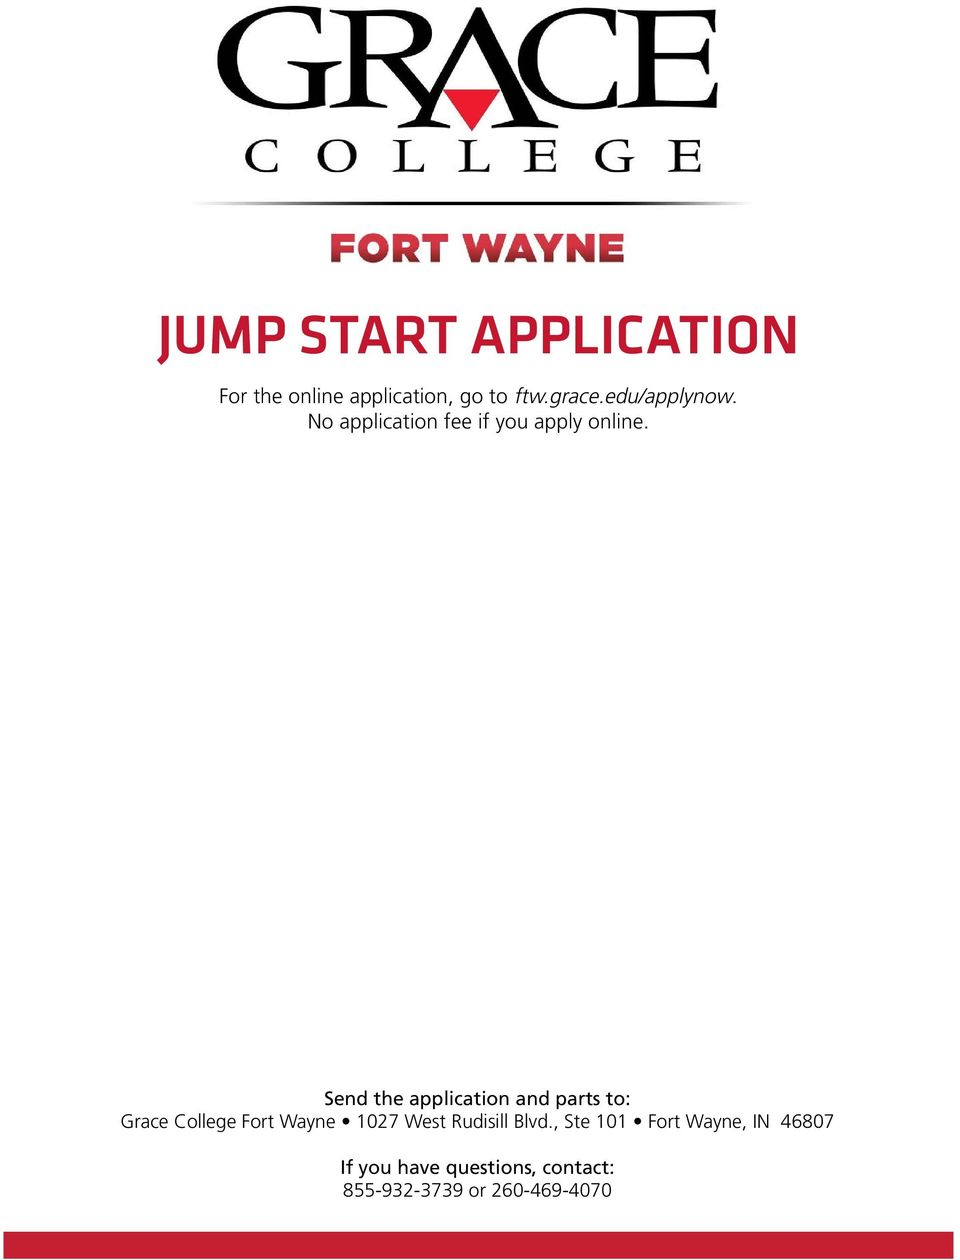 Send the application and parts to: Grace College Fort Wayne 1027 West